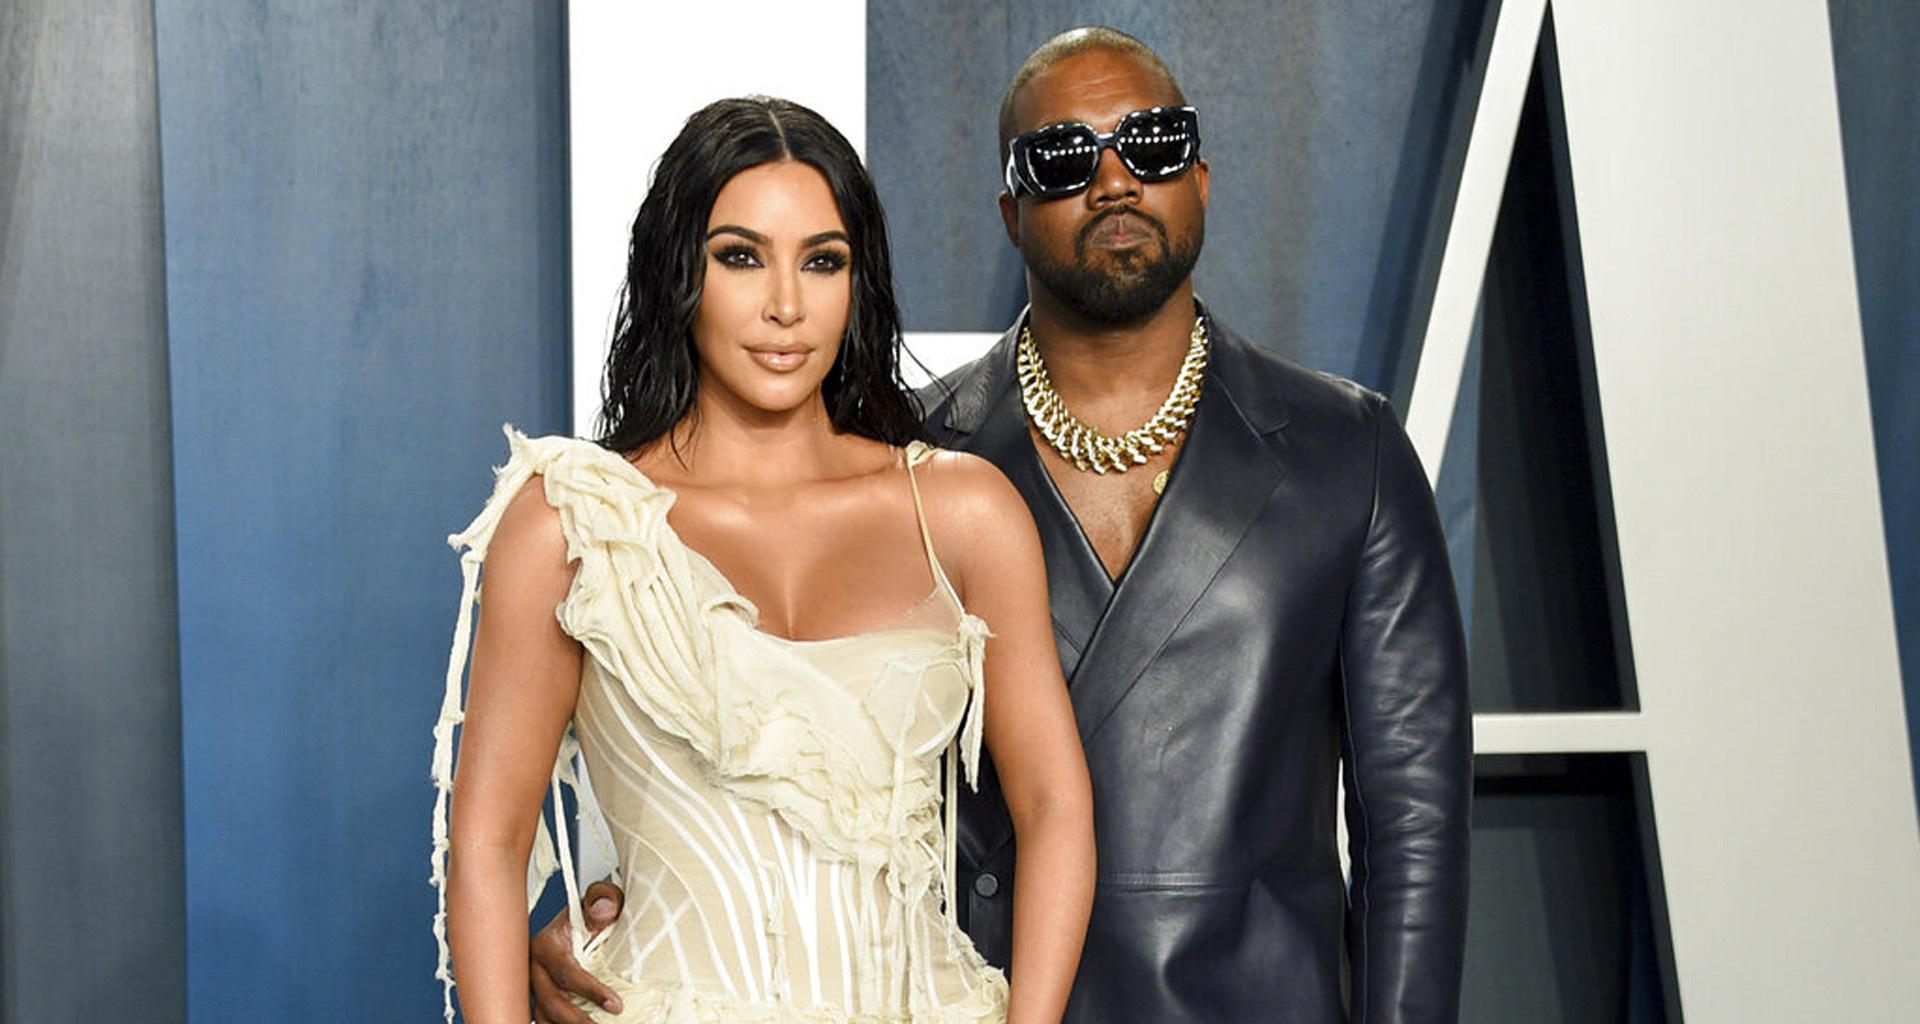 Kim Kardashian - Here's What It Would Take For The KUWTK Star To Call Out The Divorce And Take Kanye West Back!